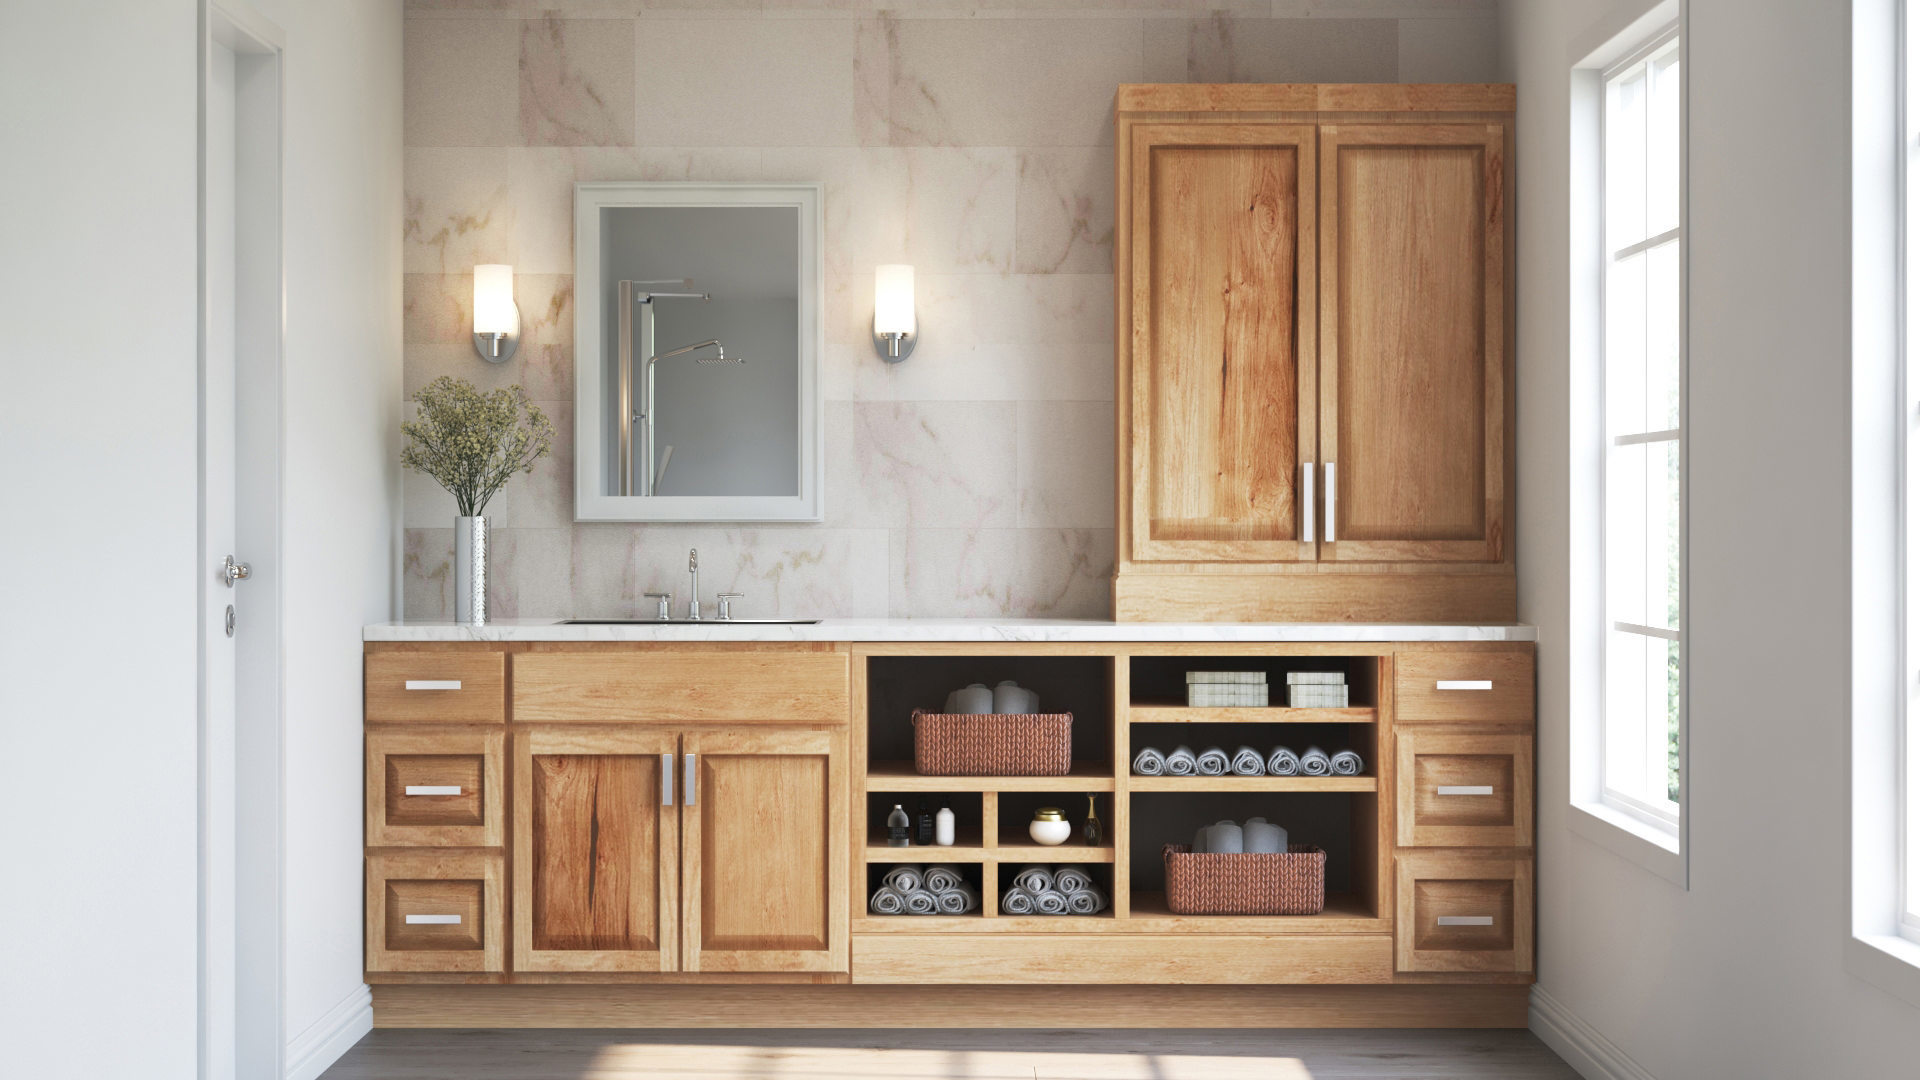 Hampton Bath Cabinets in Natural Hickory - Kitchen - The ...